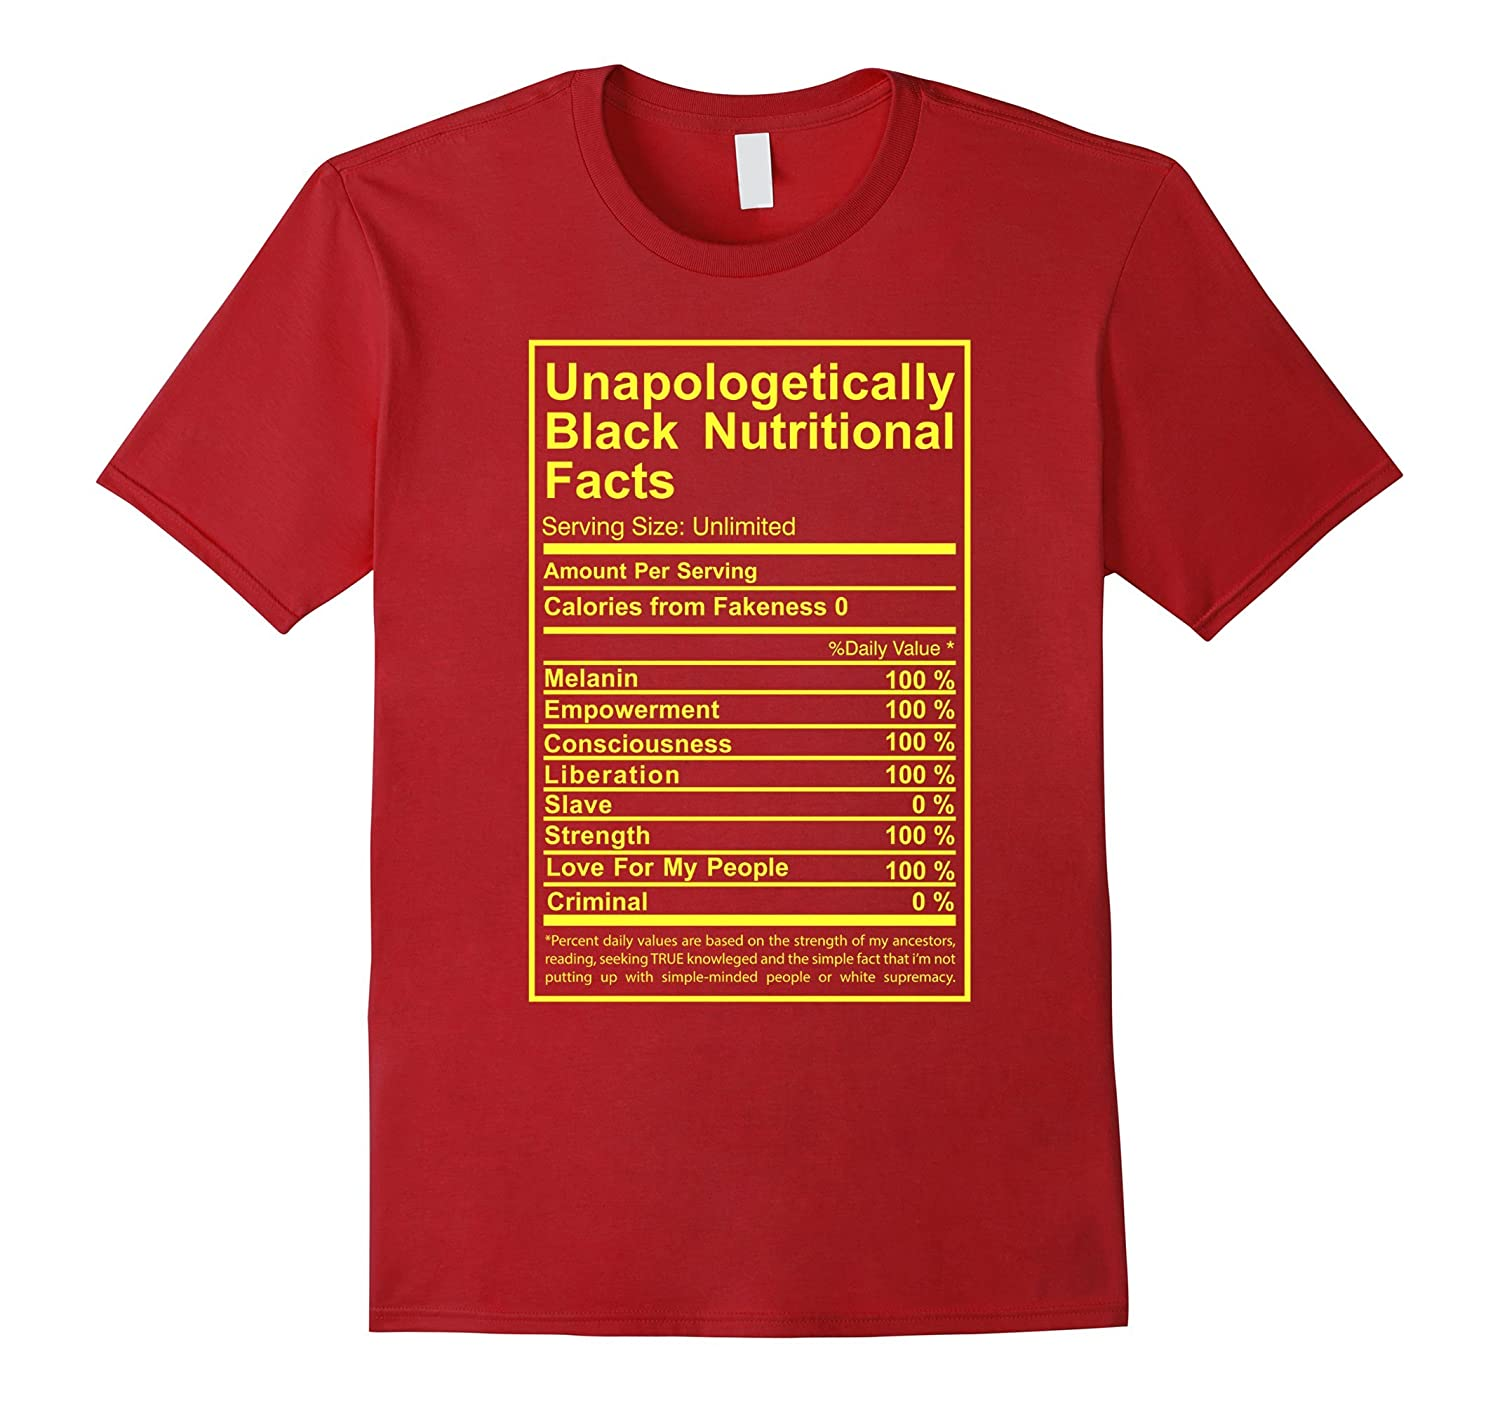 Unapologetically Black Nutritional Facts T-Shirt